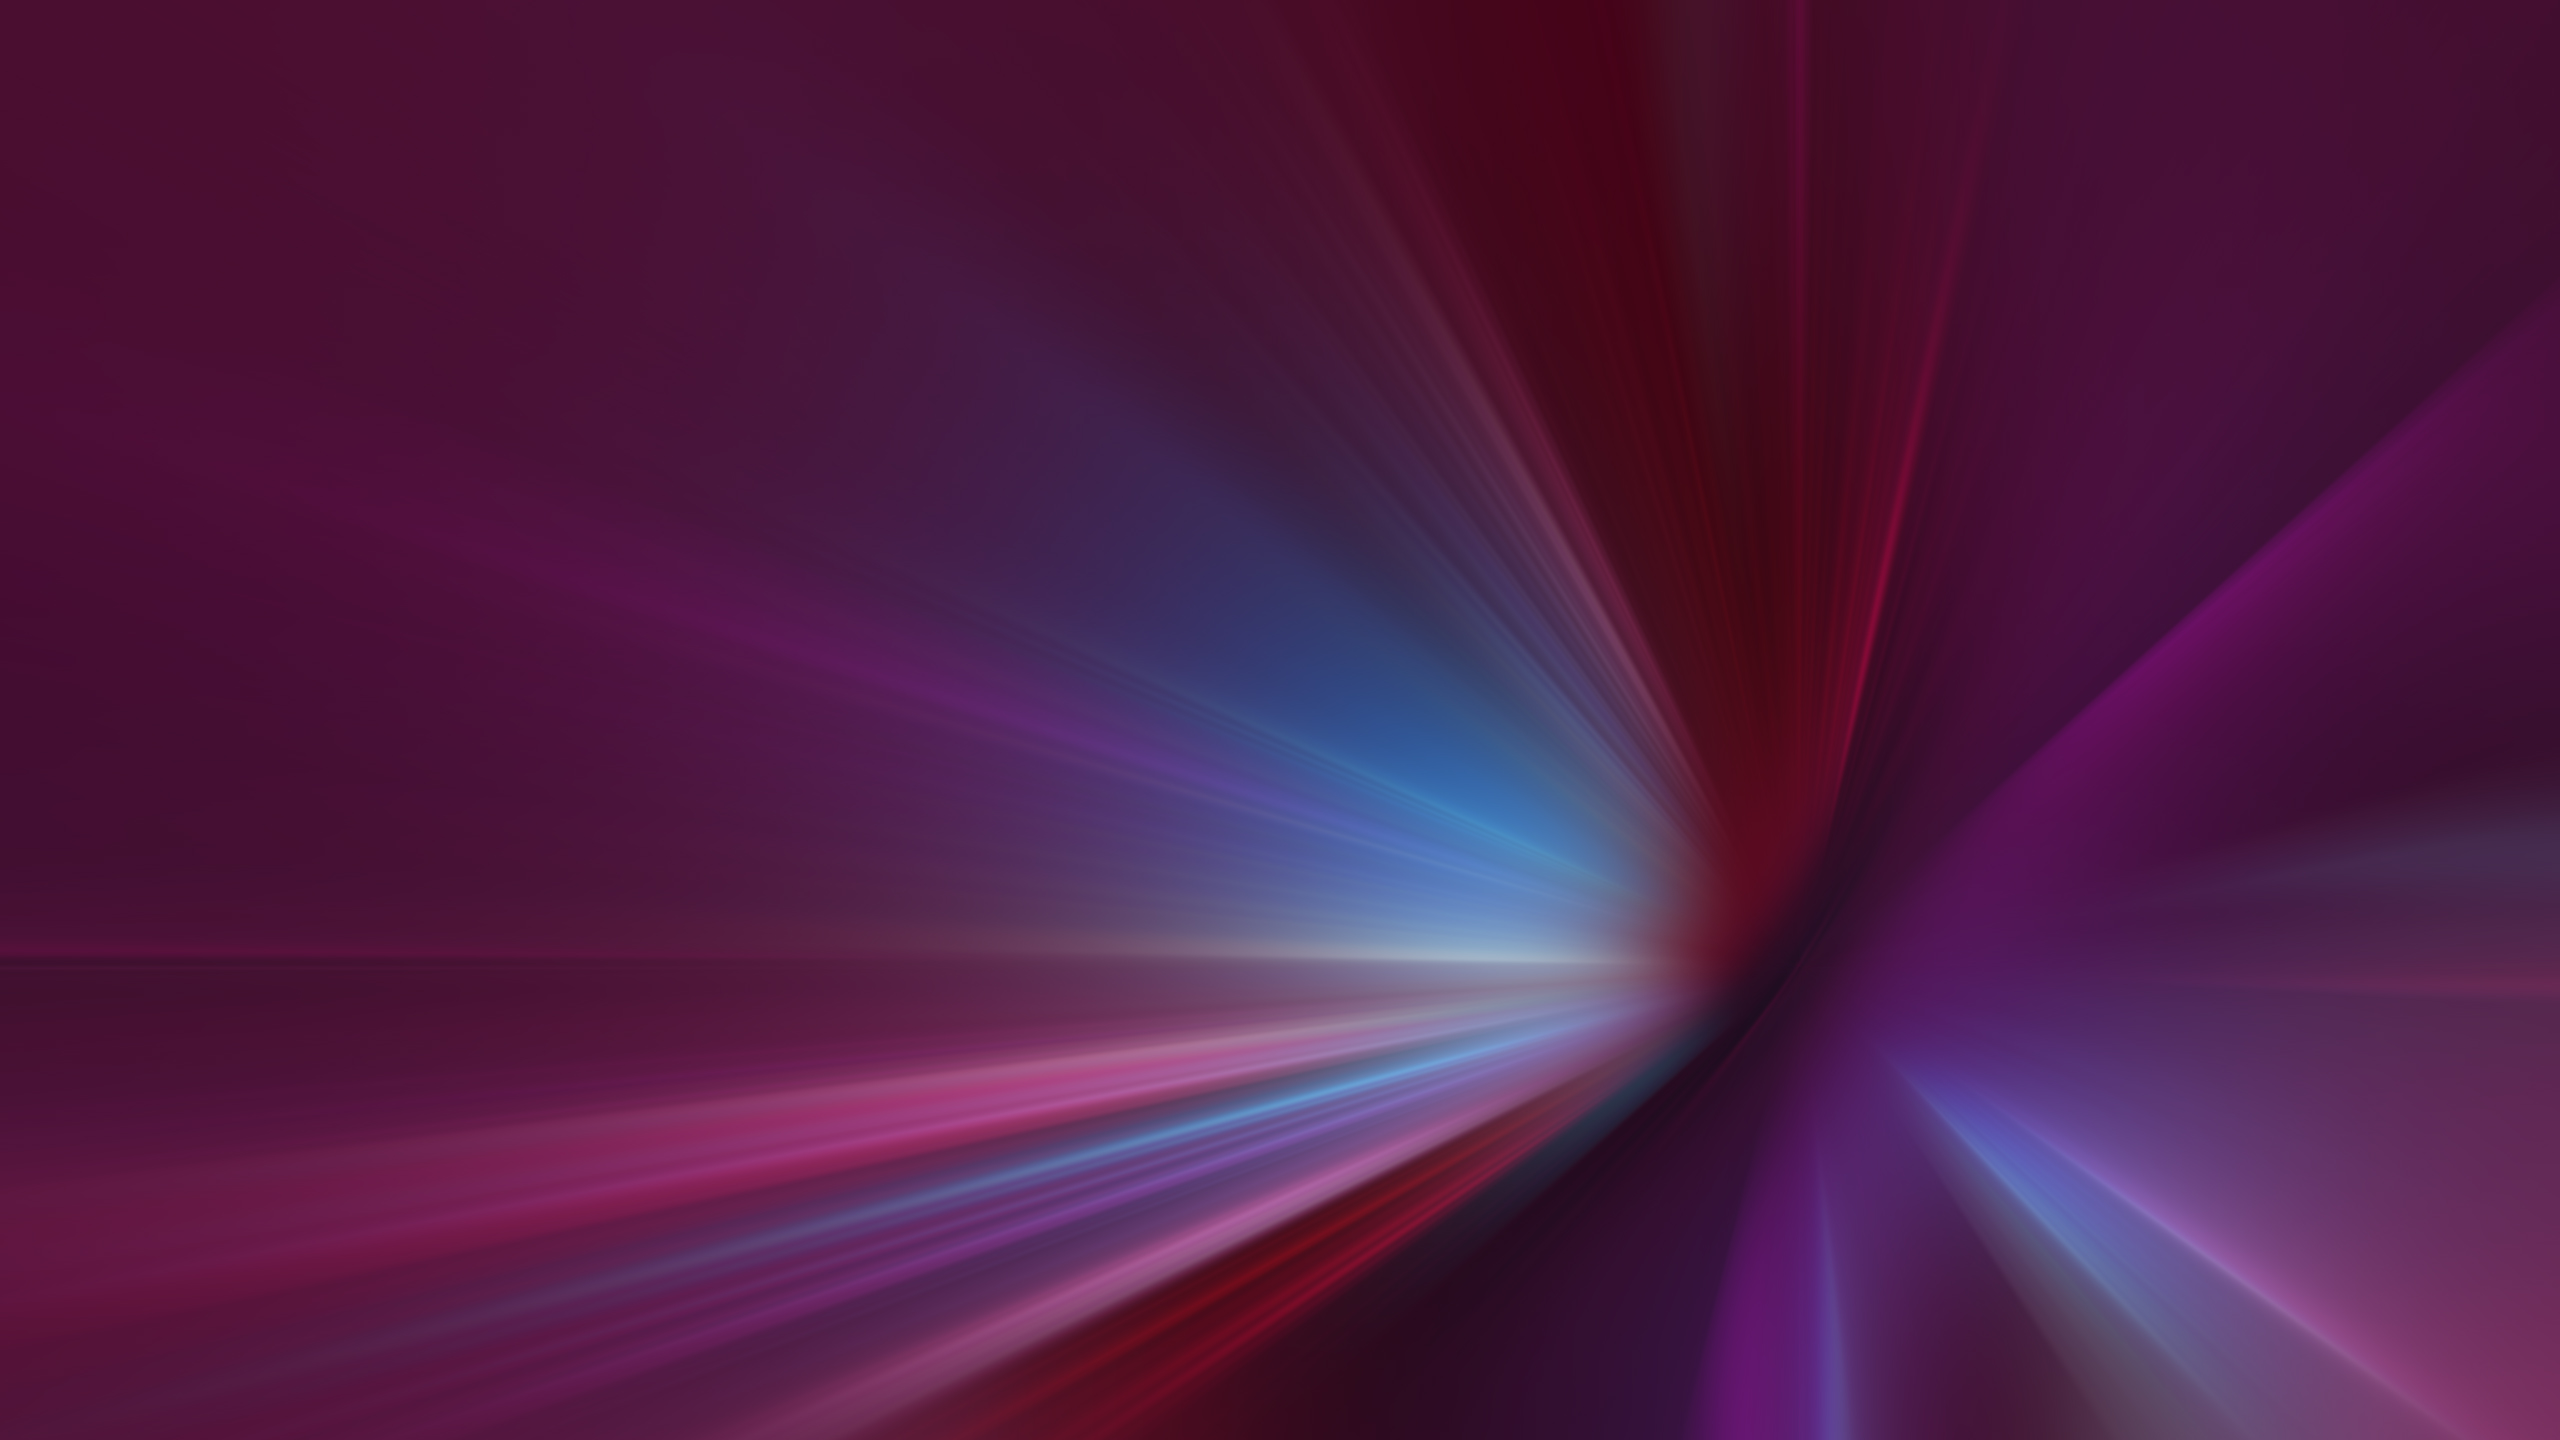 15 Awesome Hd Blurred Wallpapers